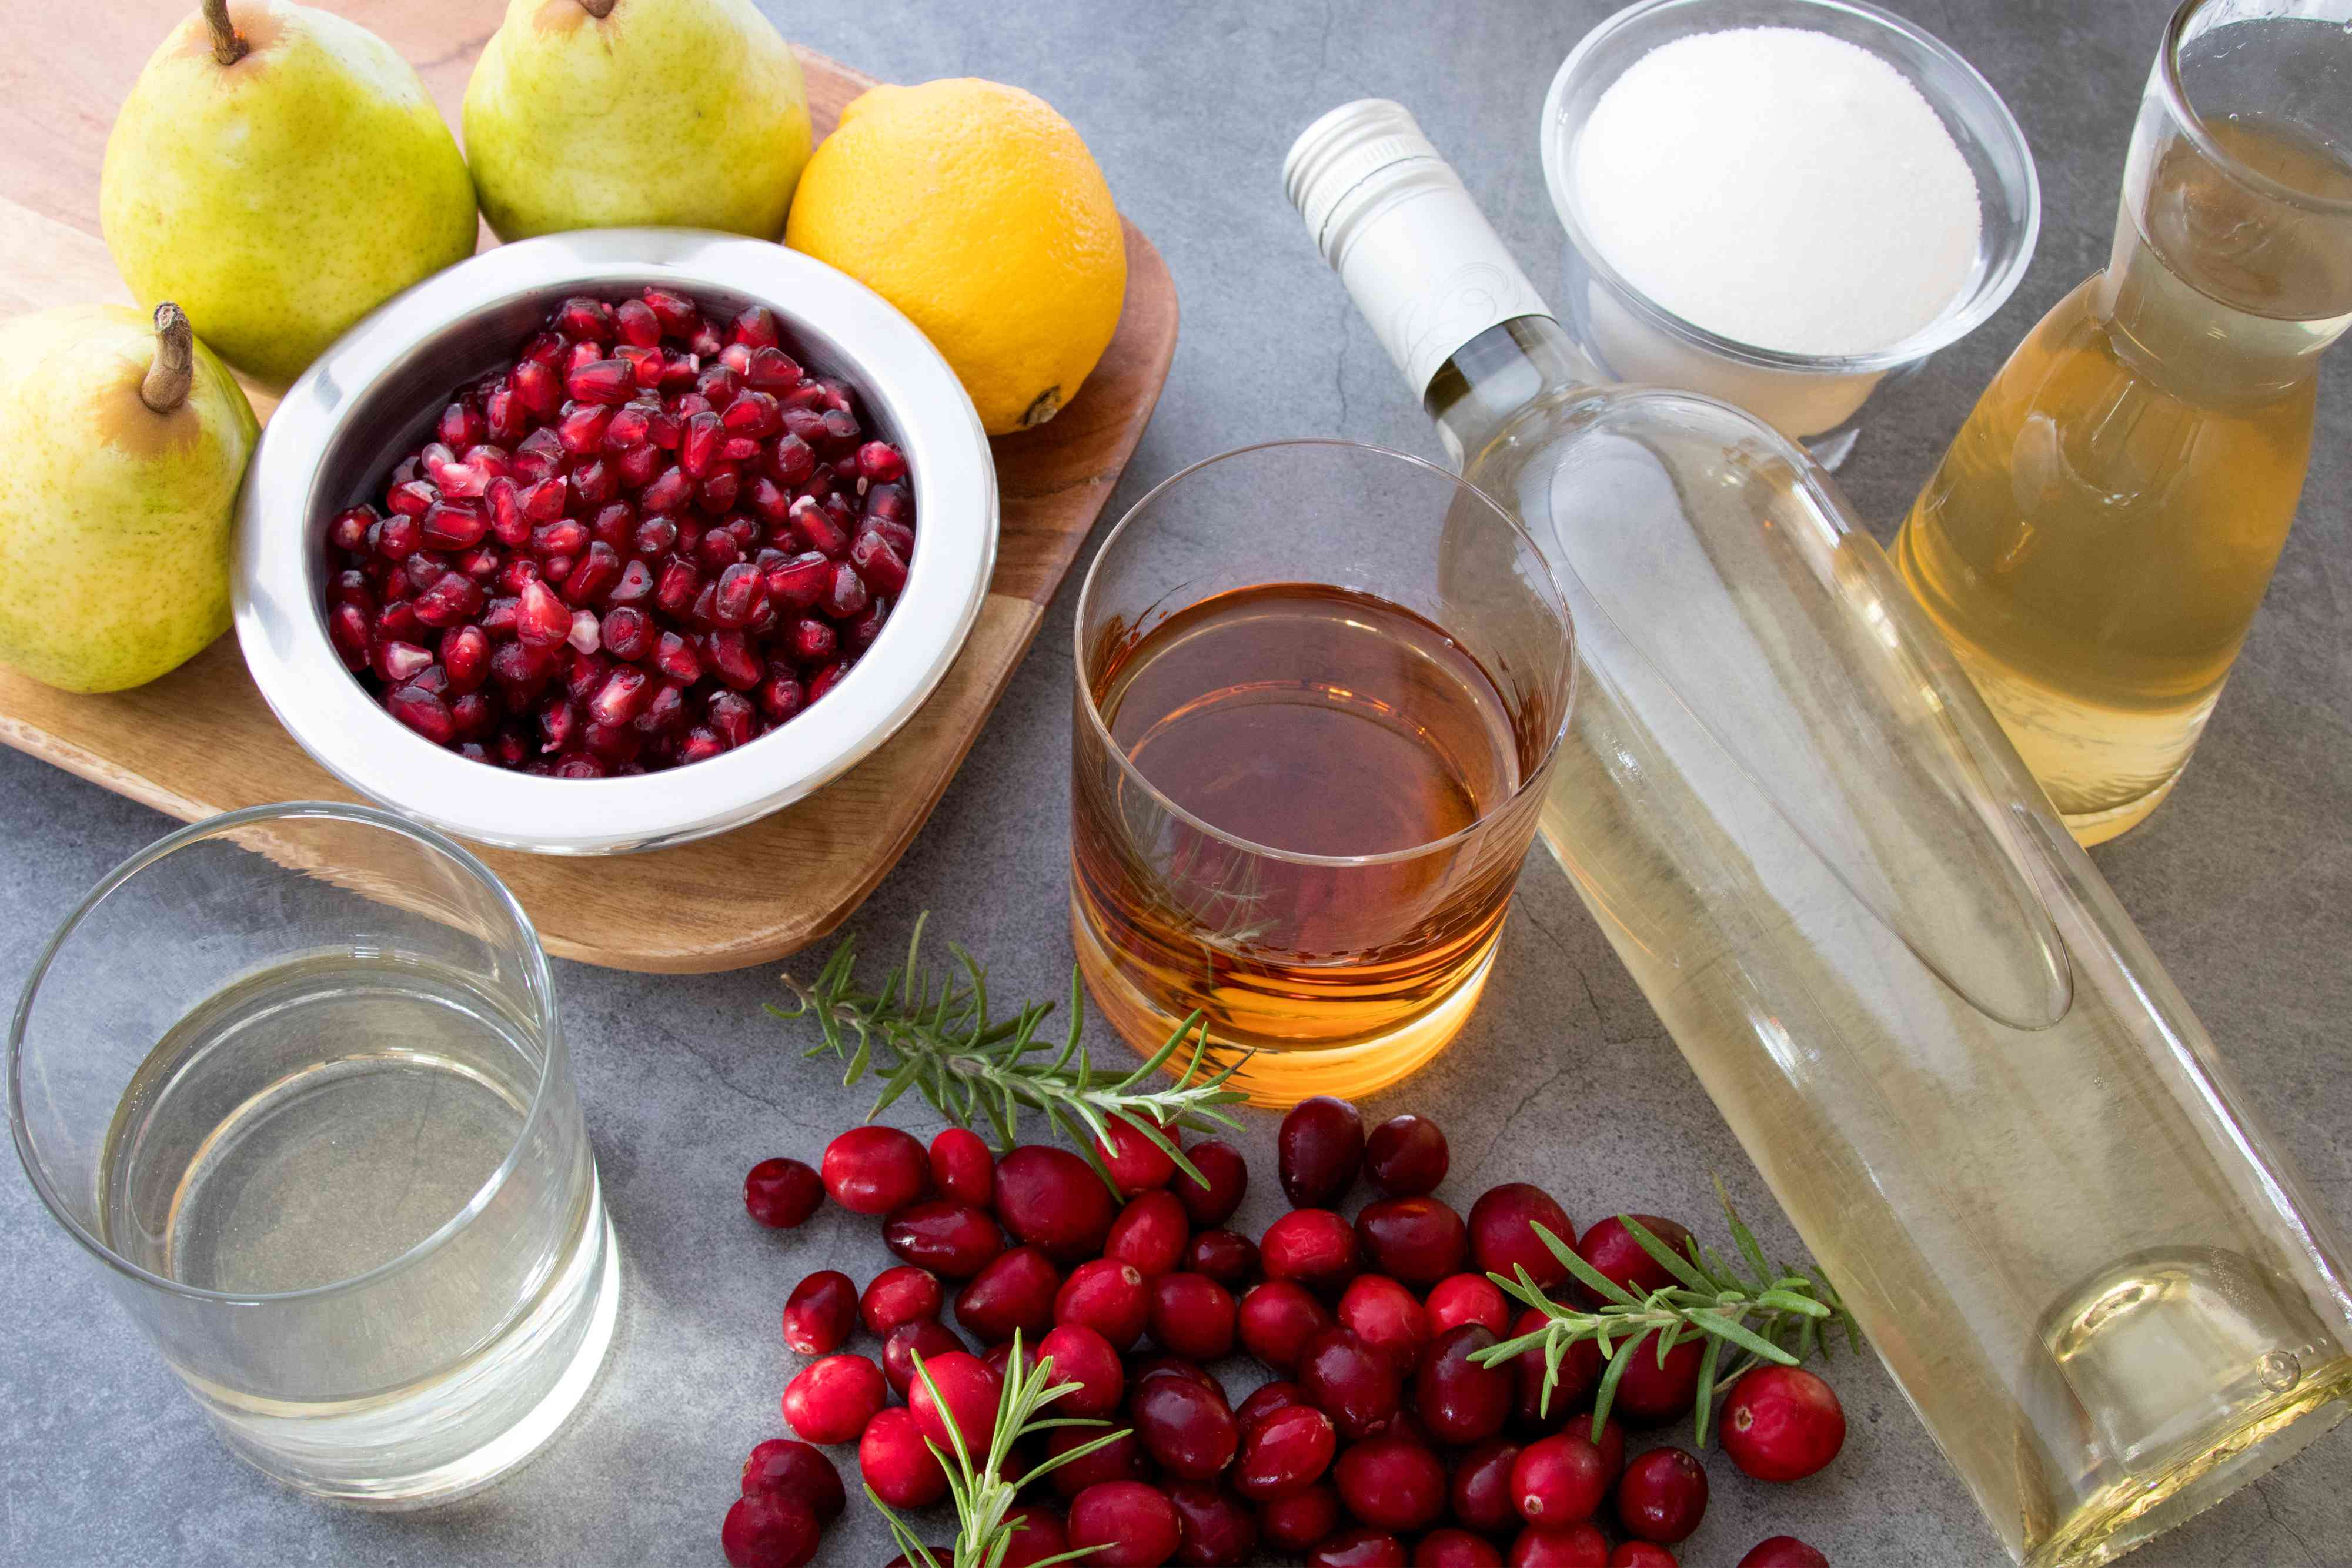 Ingredients for Christmas sangria